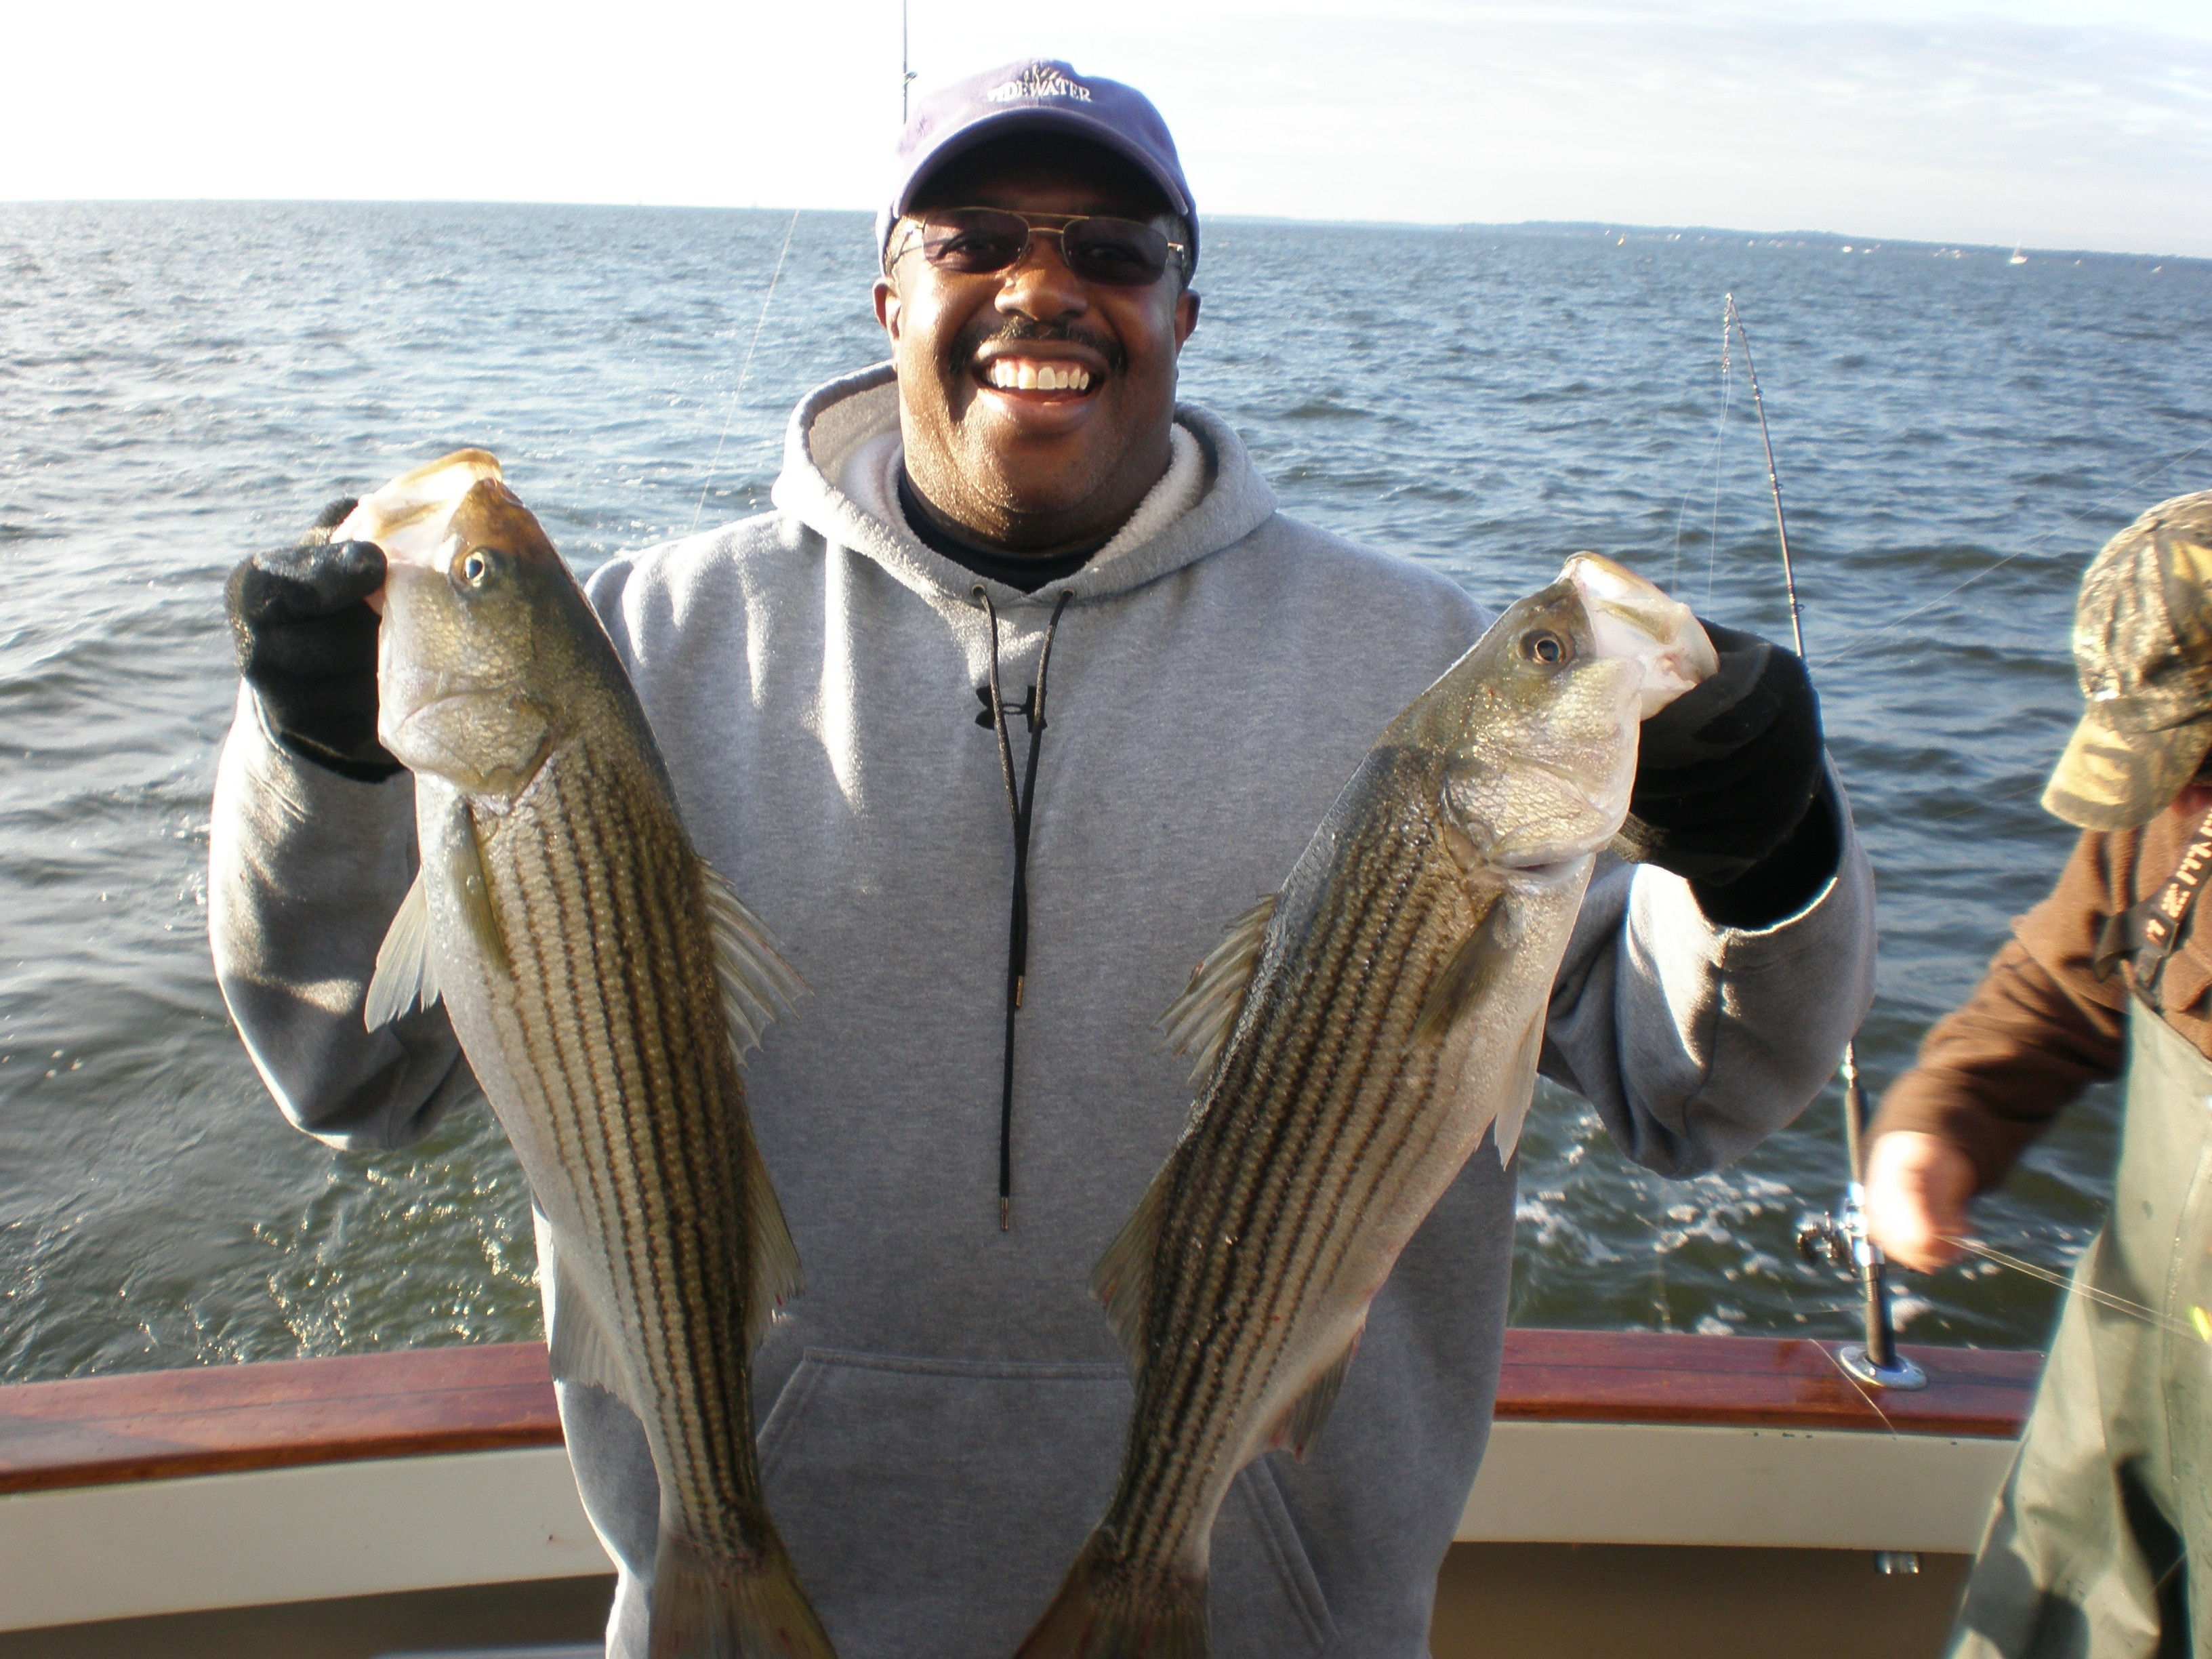 2 Striper Fish Caught on Boat